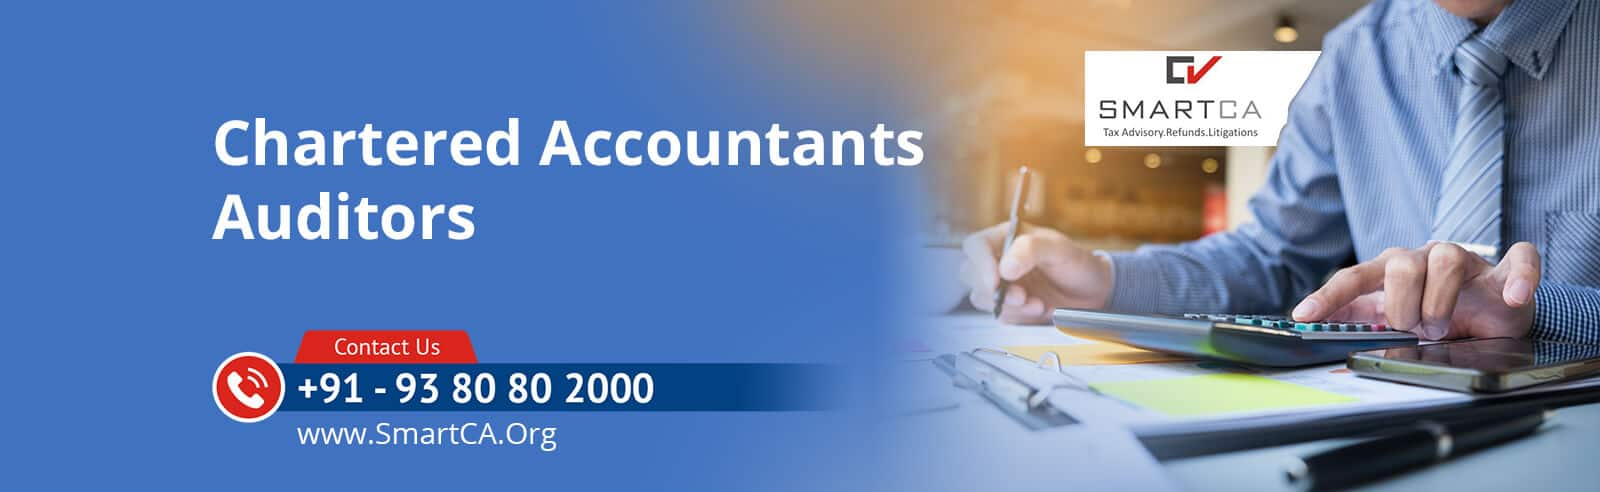 Auditors in Chennai RAMAPURAM